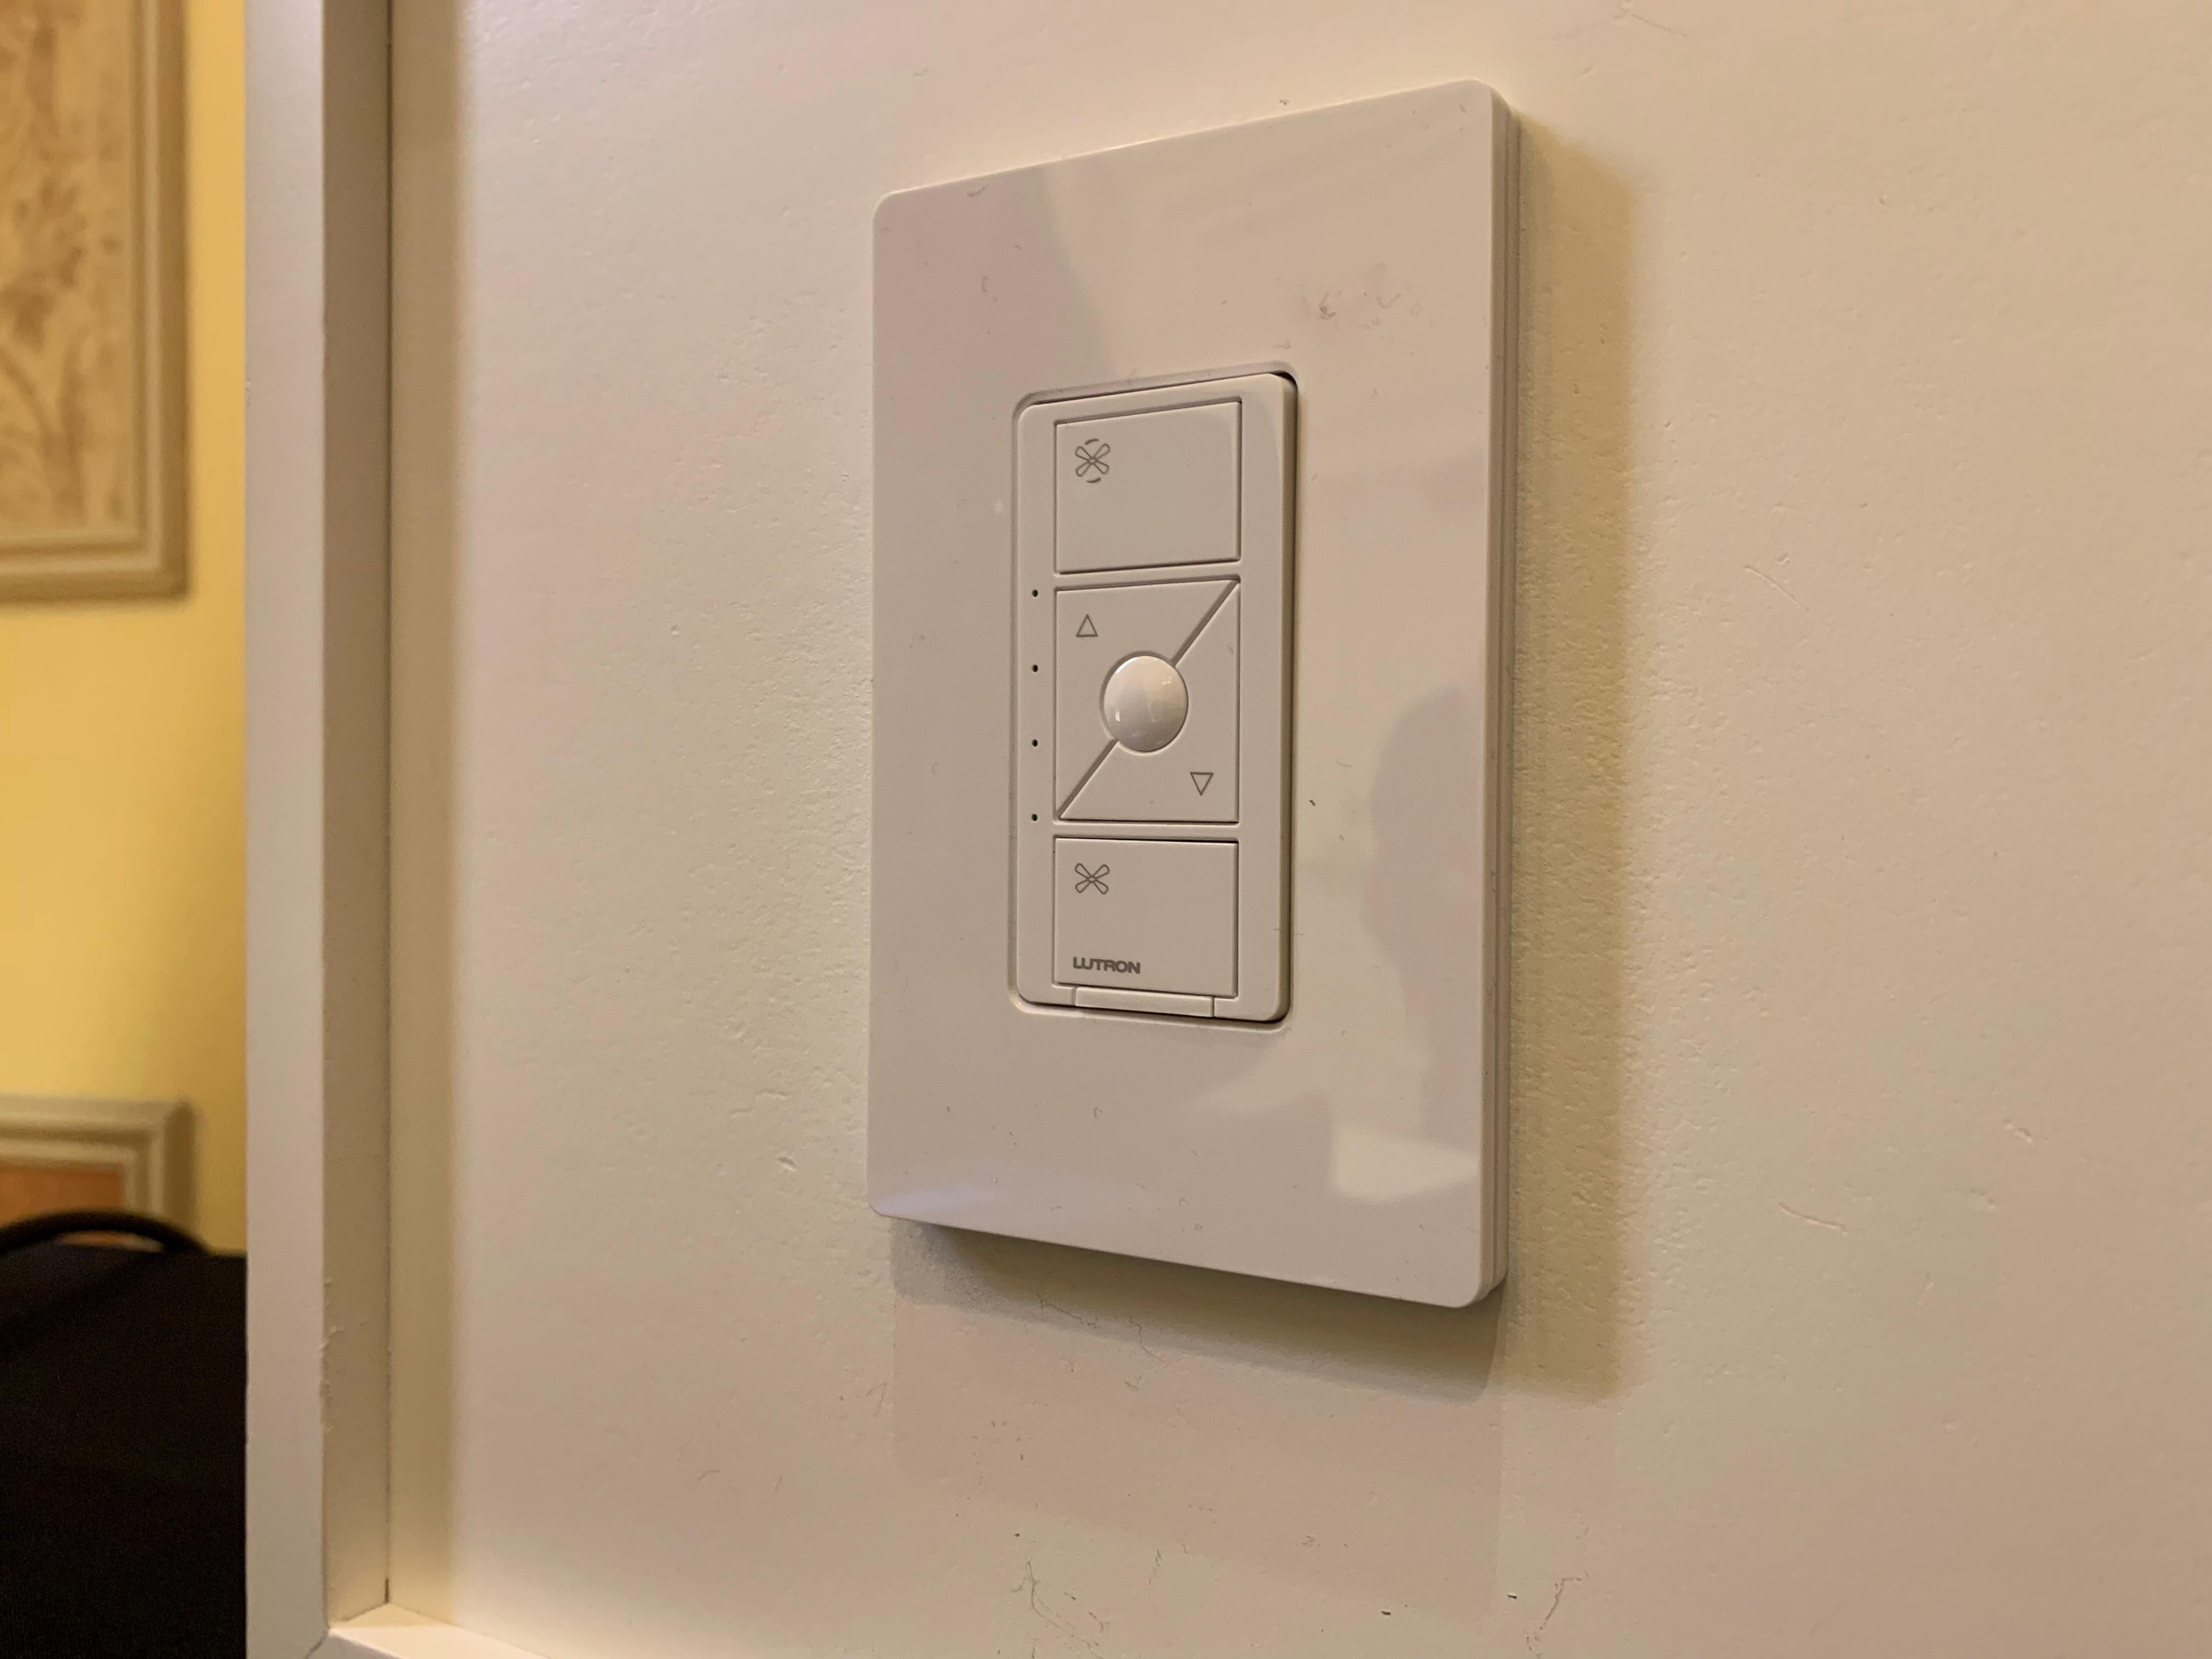 A smart switch for your fans, too